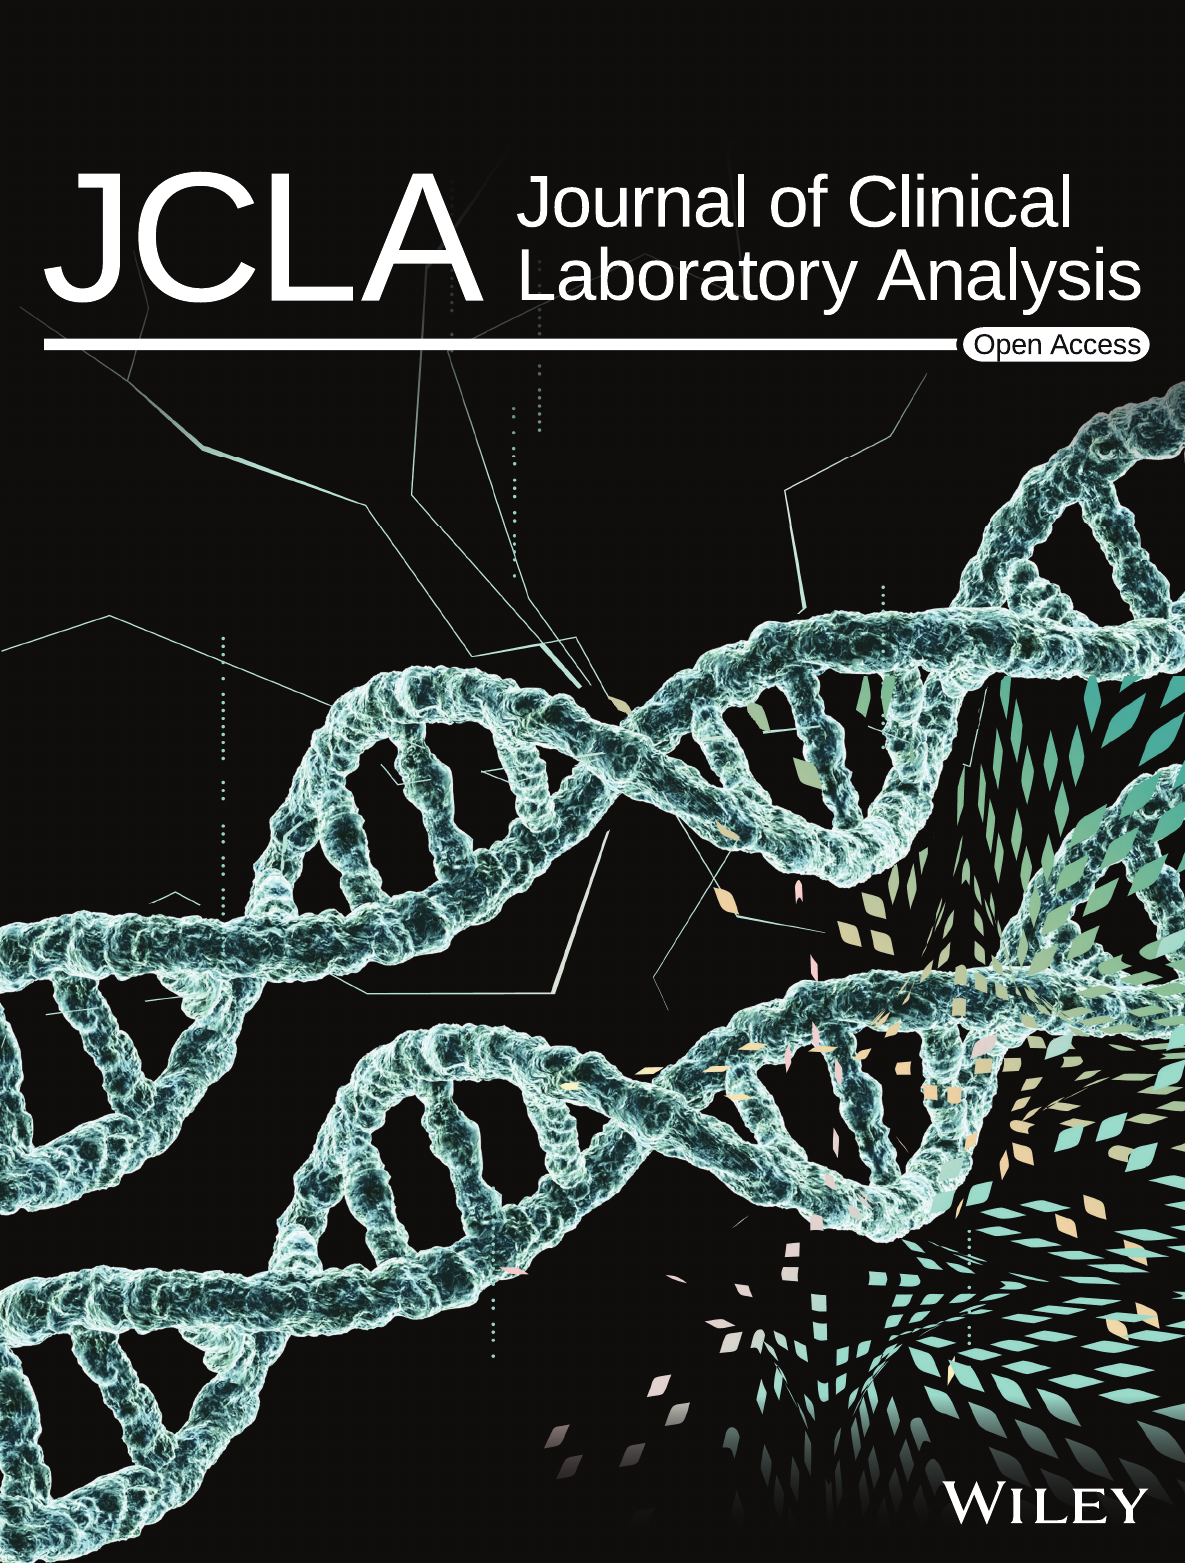 JCLA cover.png